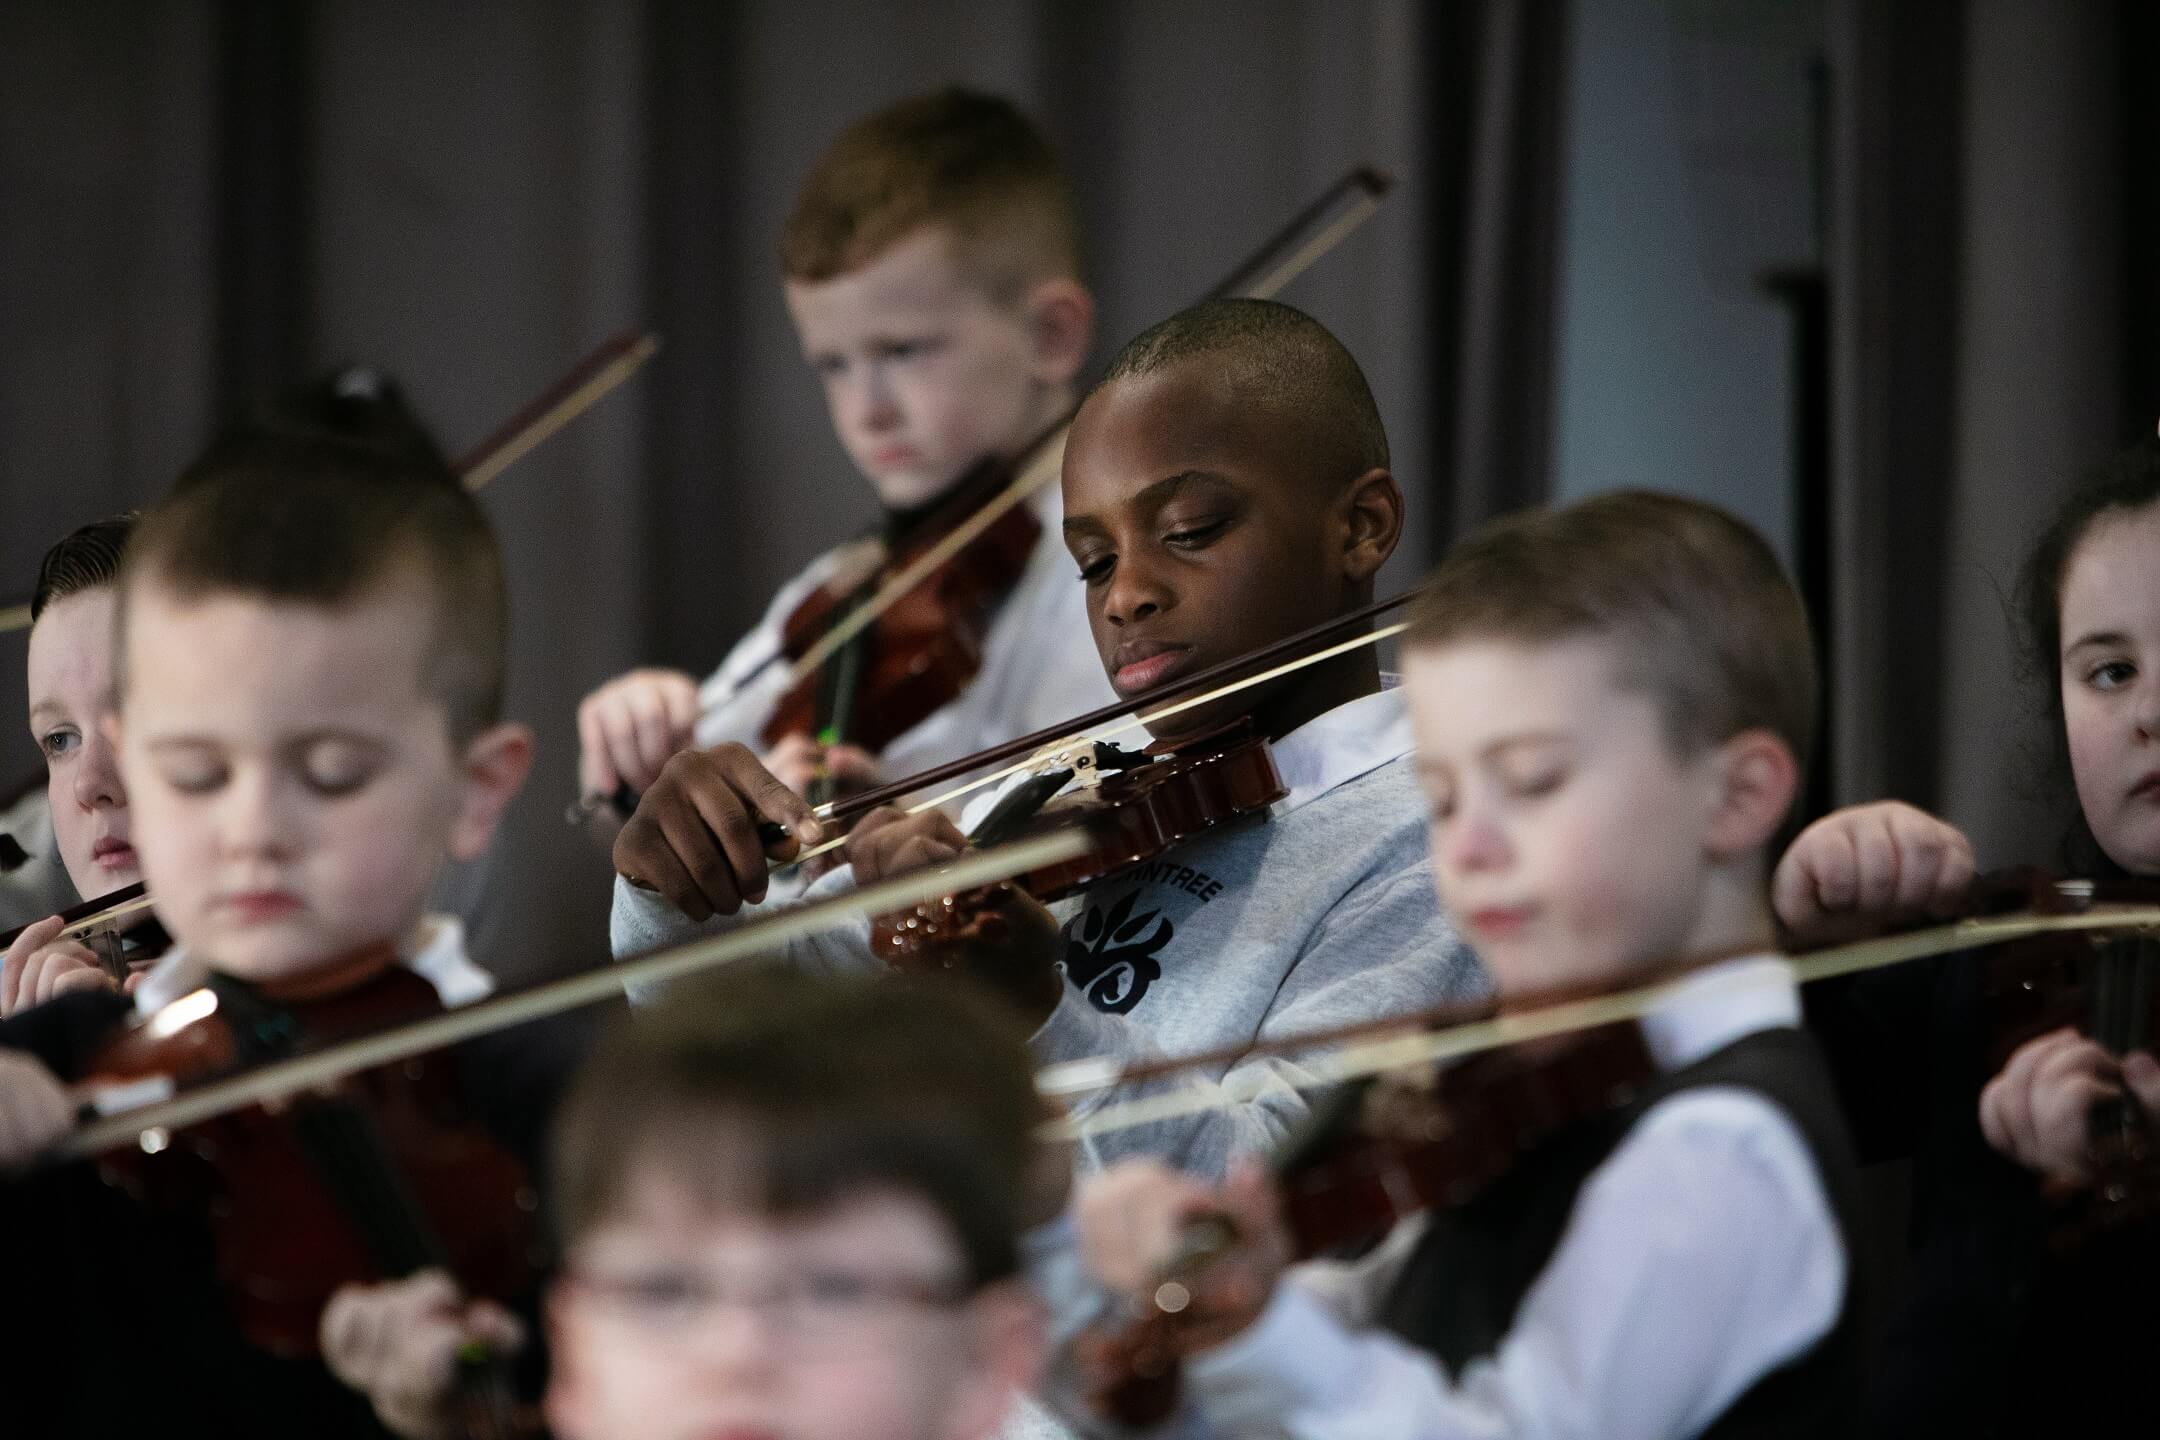 Joint statement from Principal Jeffrey Sharkey and John Wallace, Convenor of Music Education Partnership Group Image